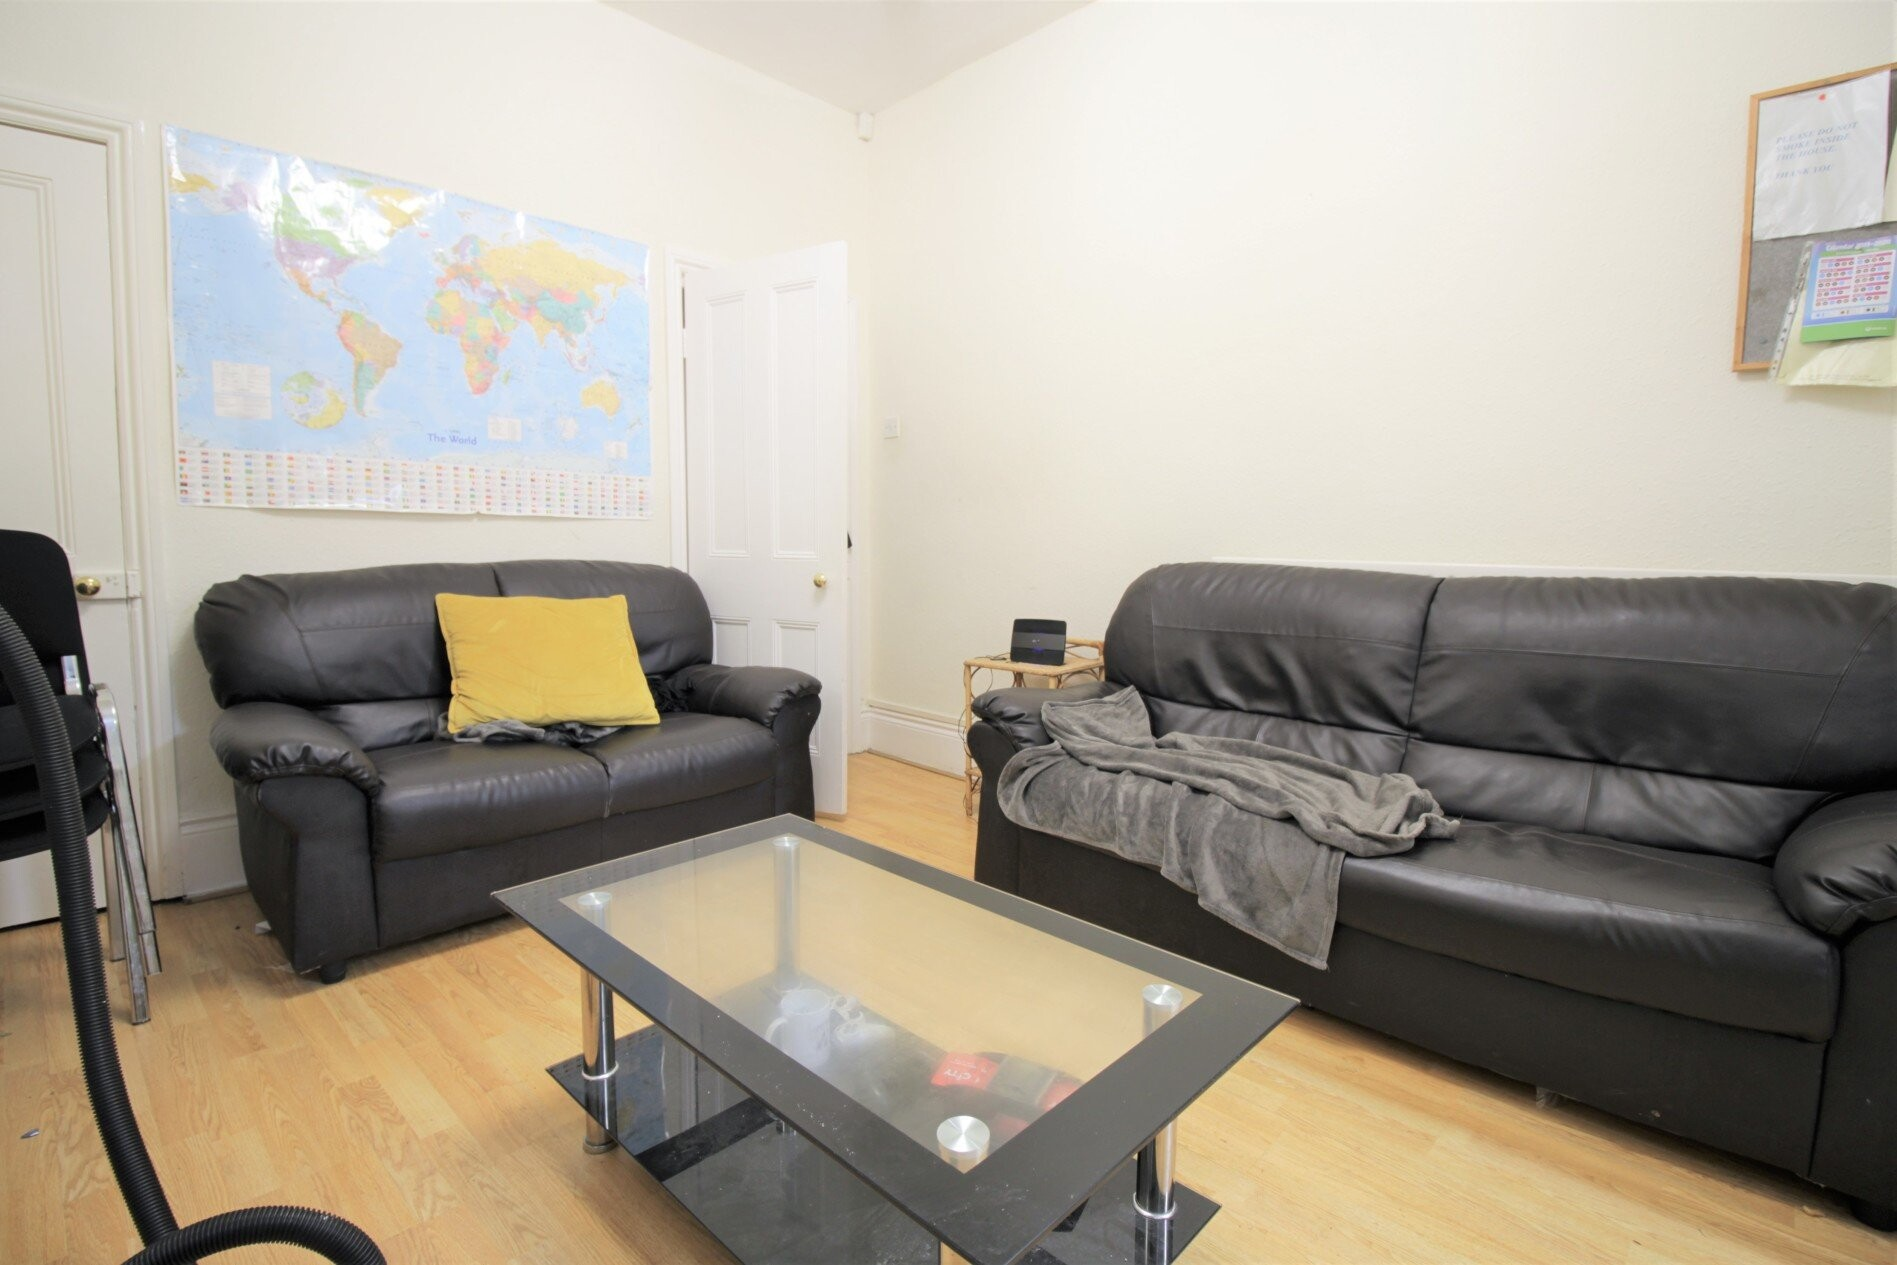 4 bedroom student house in Broomhill, Sheffield